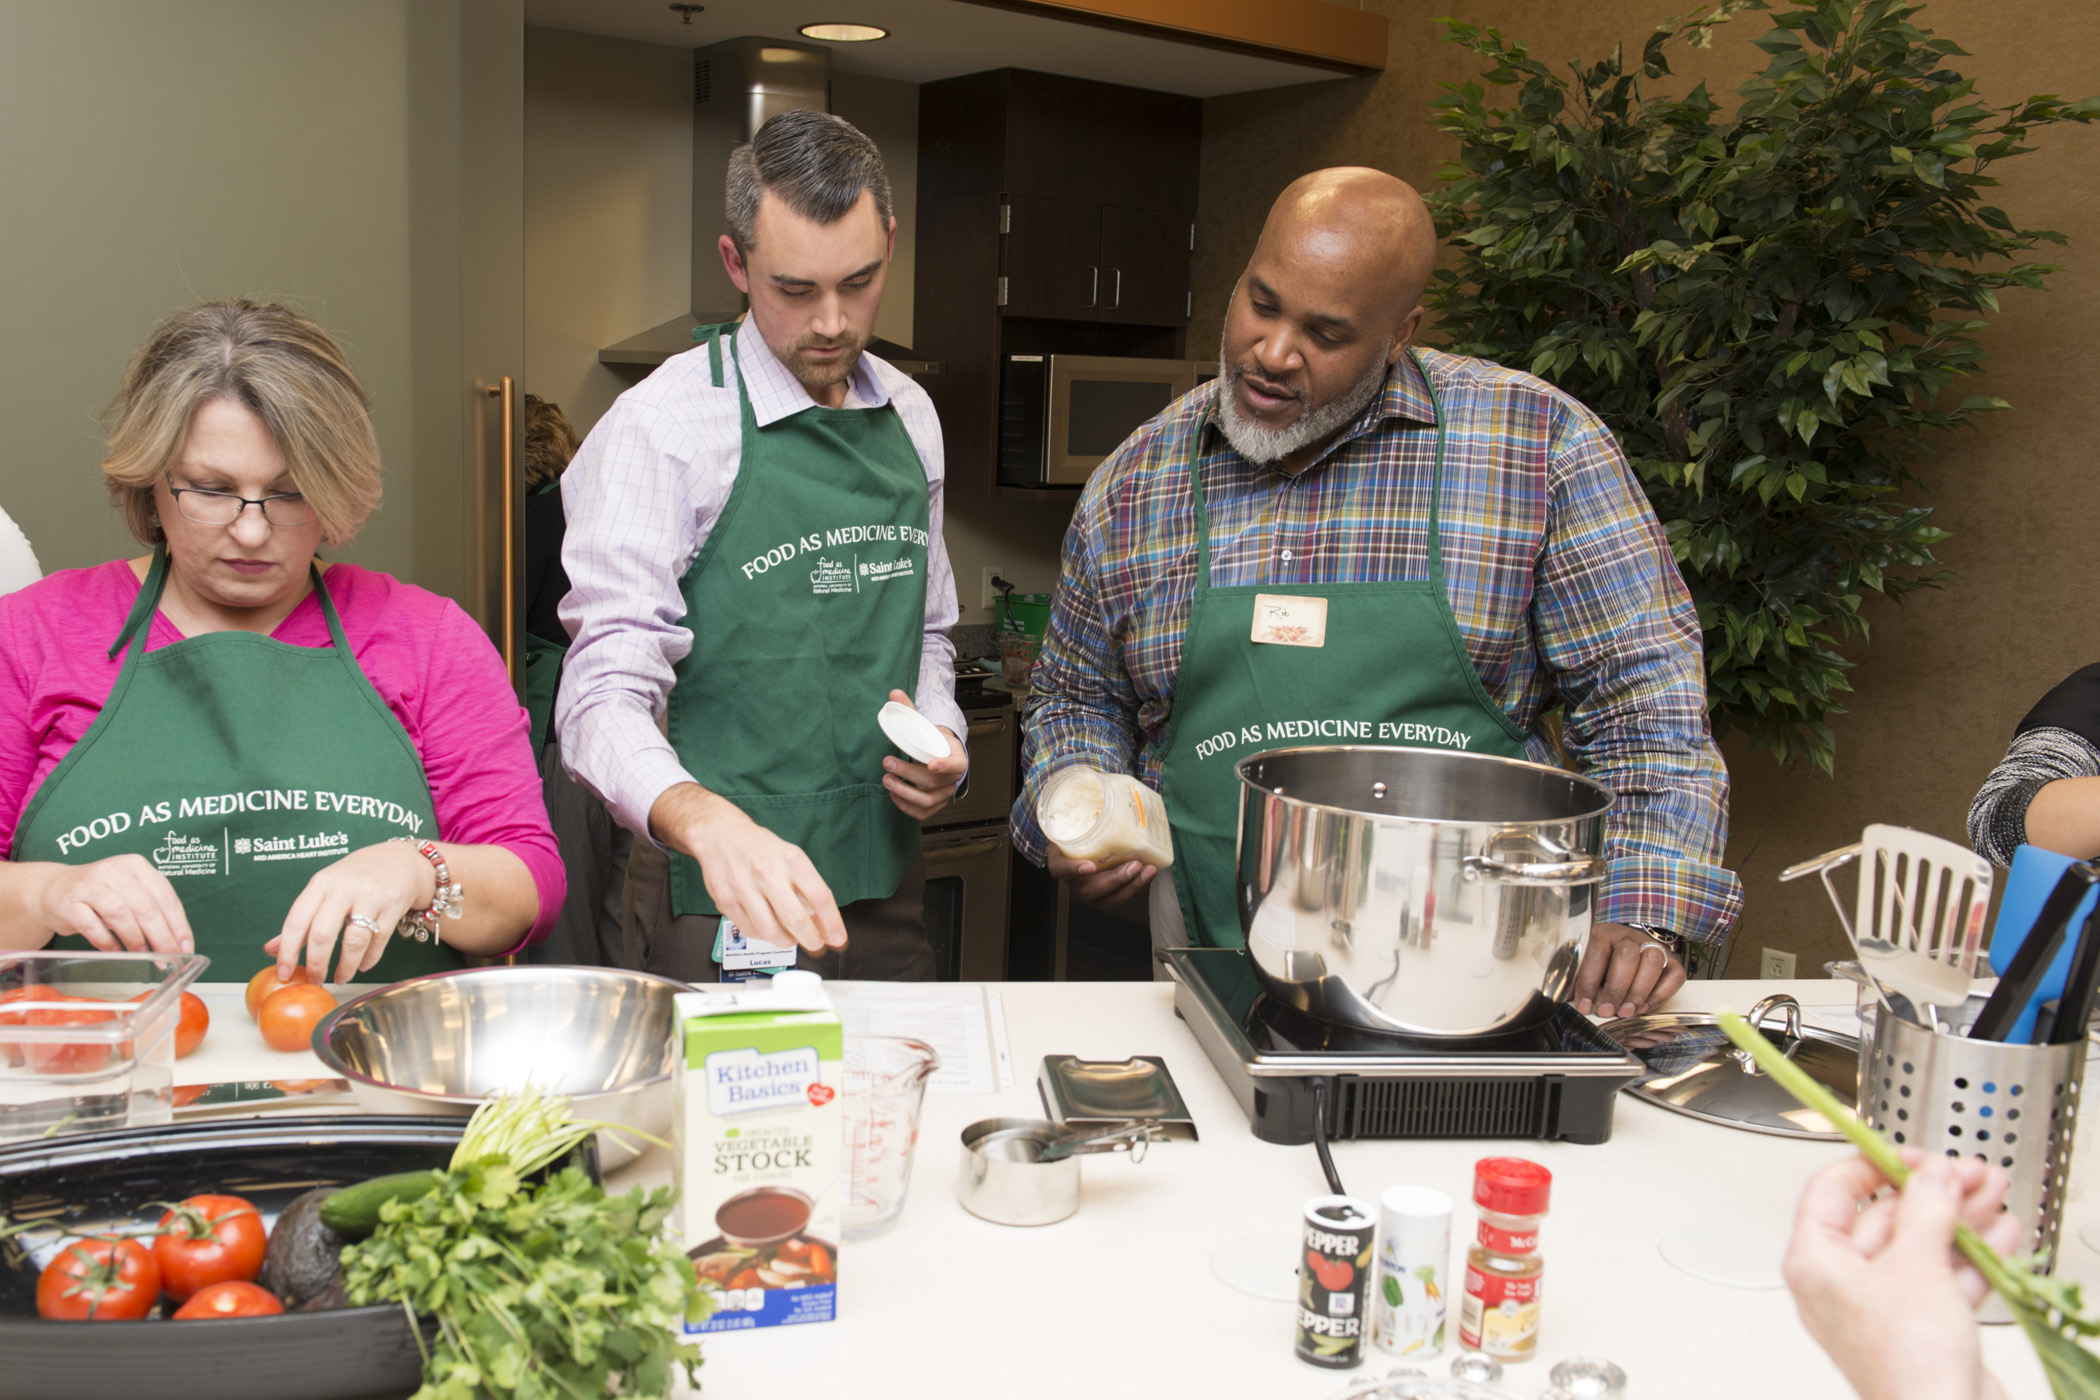 Through FAME classes, individuals are encouraged to reclaim their health by cooking at home.